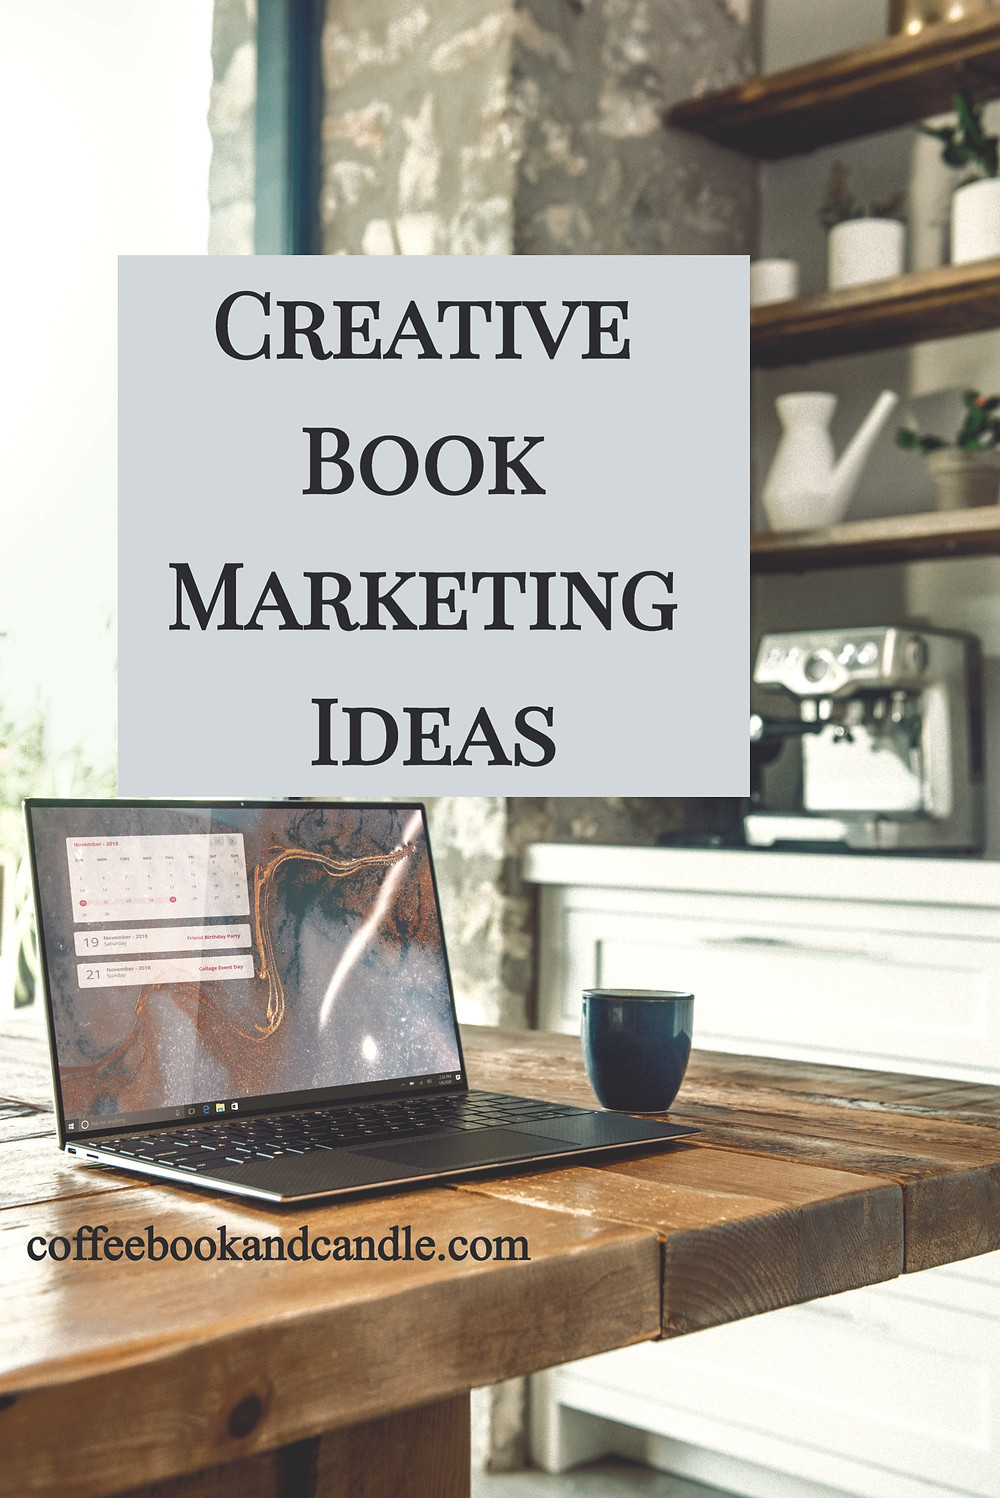 Creative Book Marketing Ideas Coffee, Book, and Candle